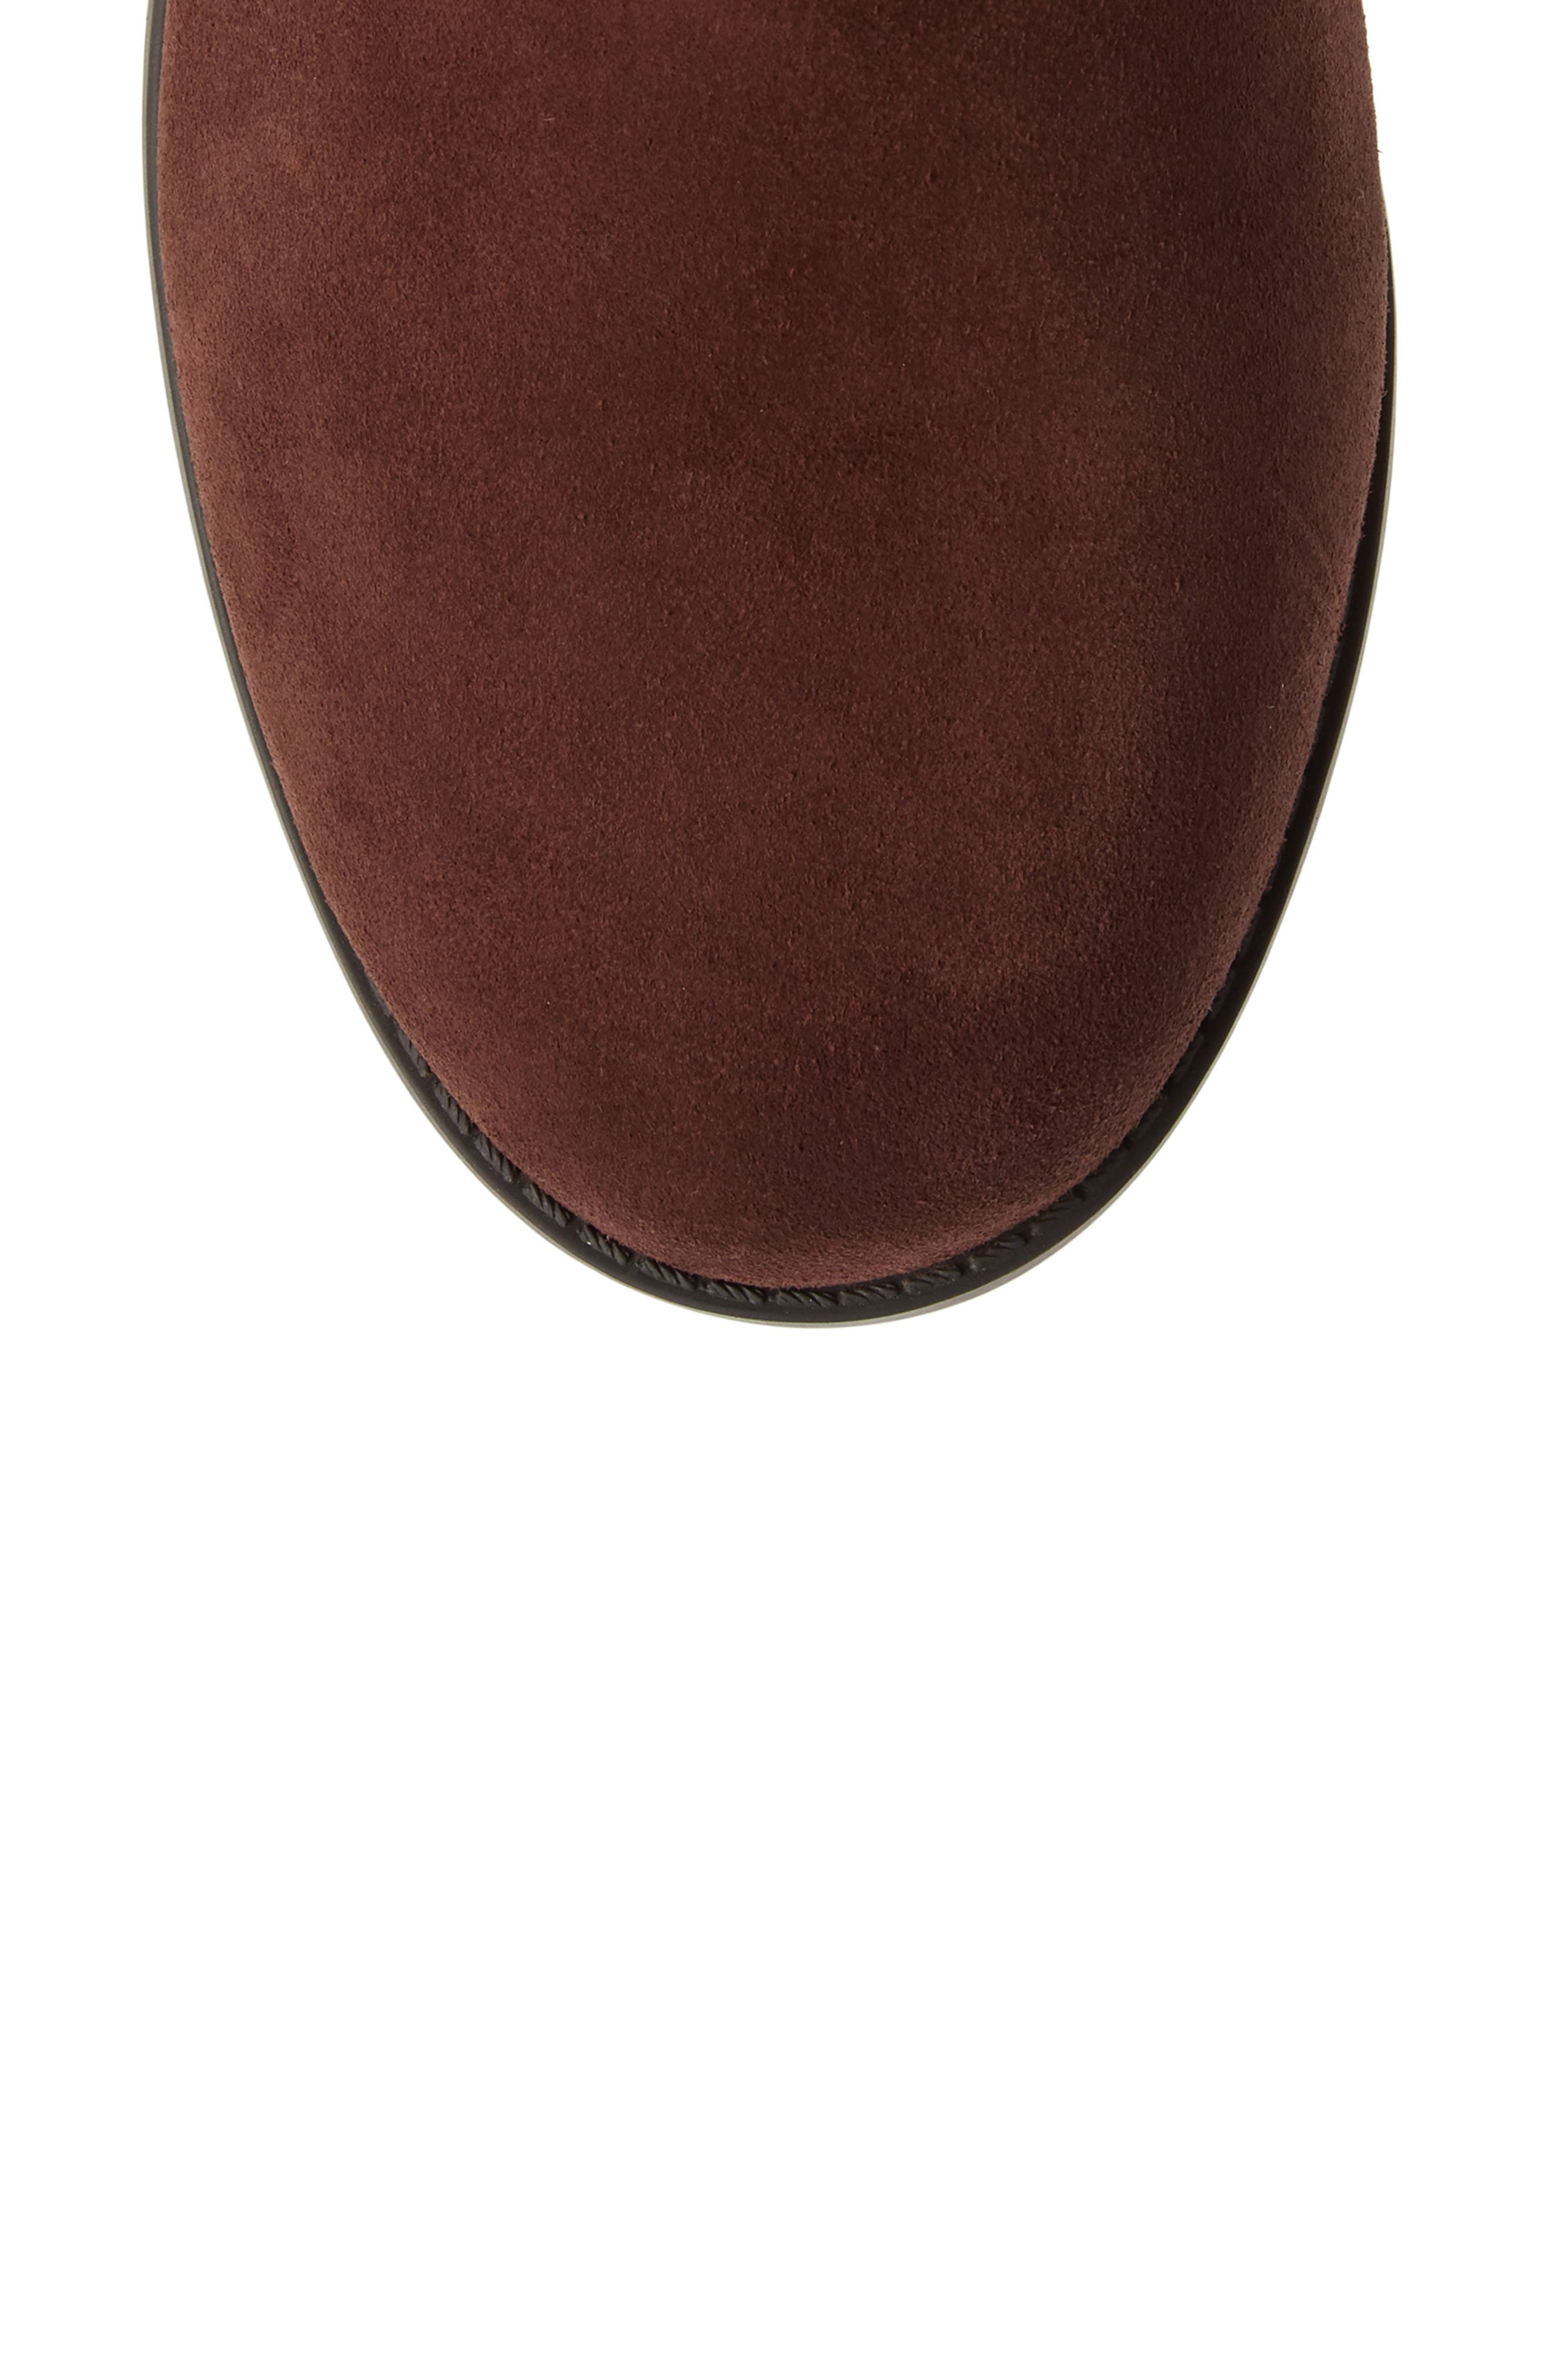 Downing Boot,                             Alternate thumbnail 5, color,                             CHOCOLATE SUEDE